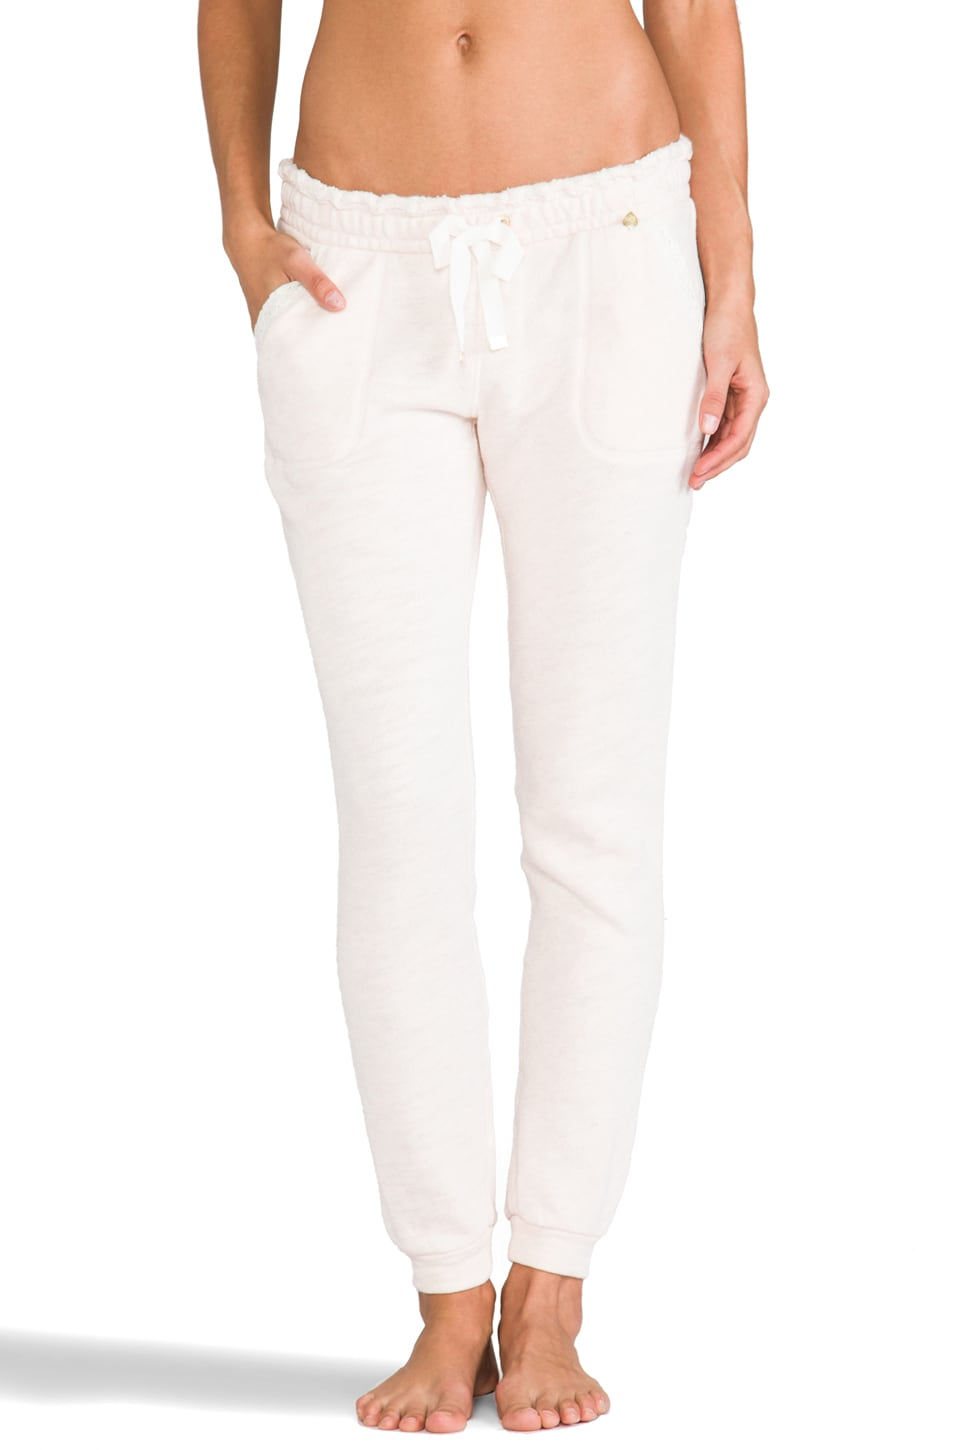 Juicy Couture Lace Pant in Heather Pink